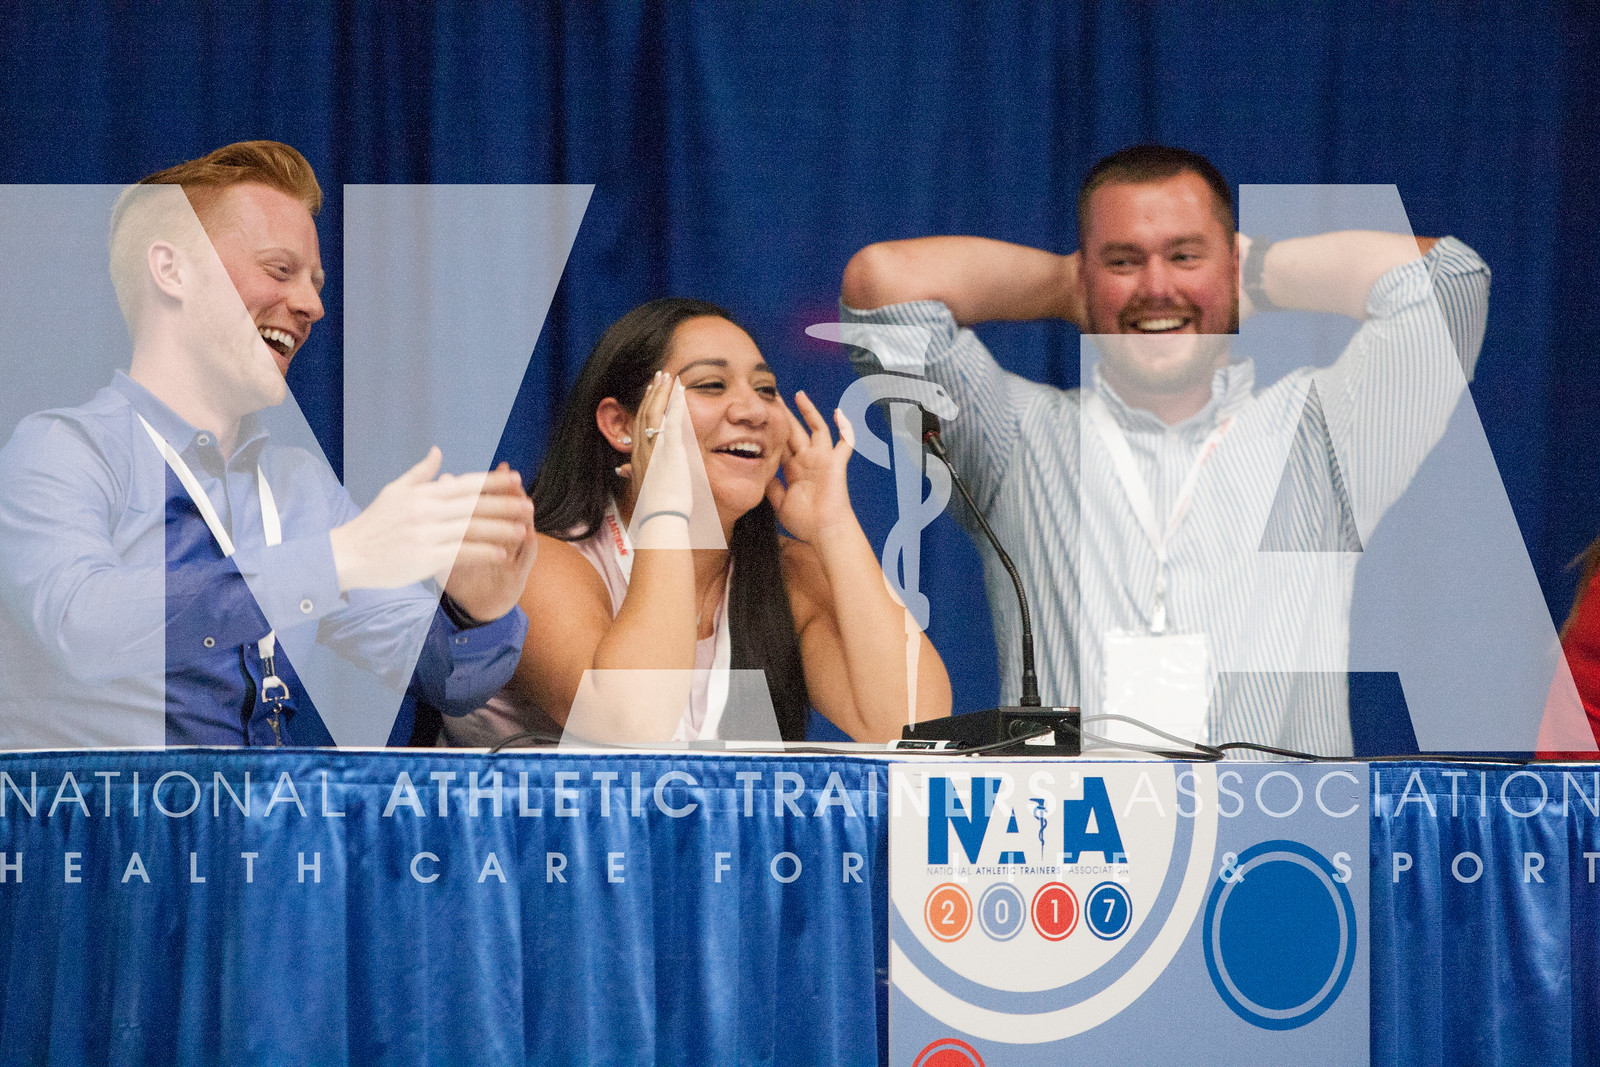 J. Kat Woronowicz photos/Quiz Bowl at the NATA Wednesday, June 28th, 2017.